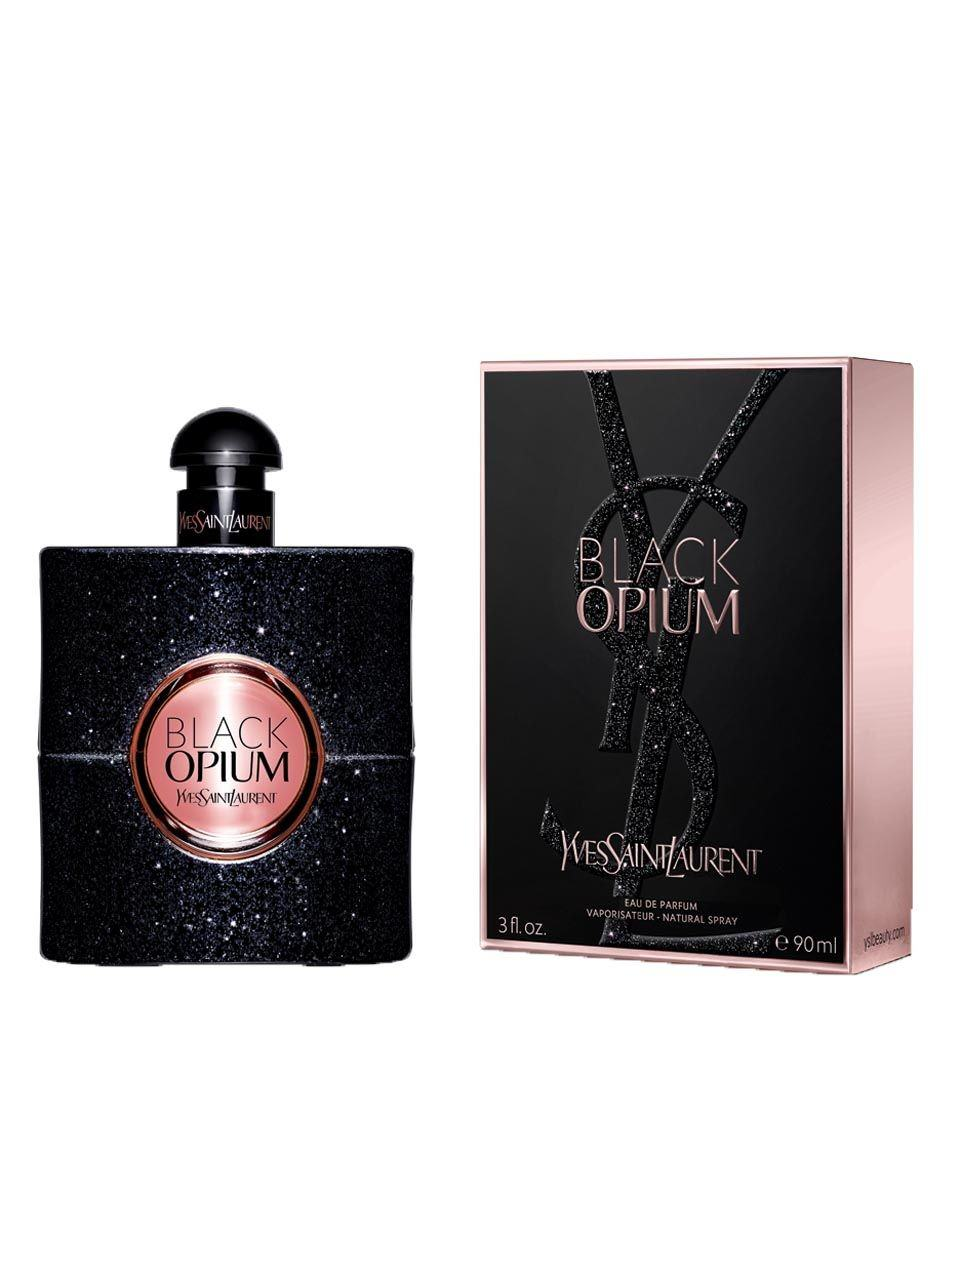 PROFUMO YVES SAINT LAURENT OPIUM BLACK DONNA EAU DE PARFUM ML 50